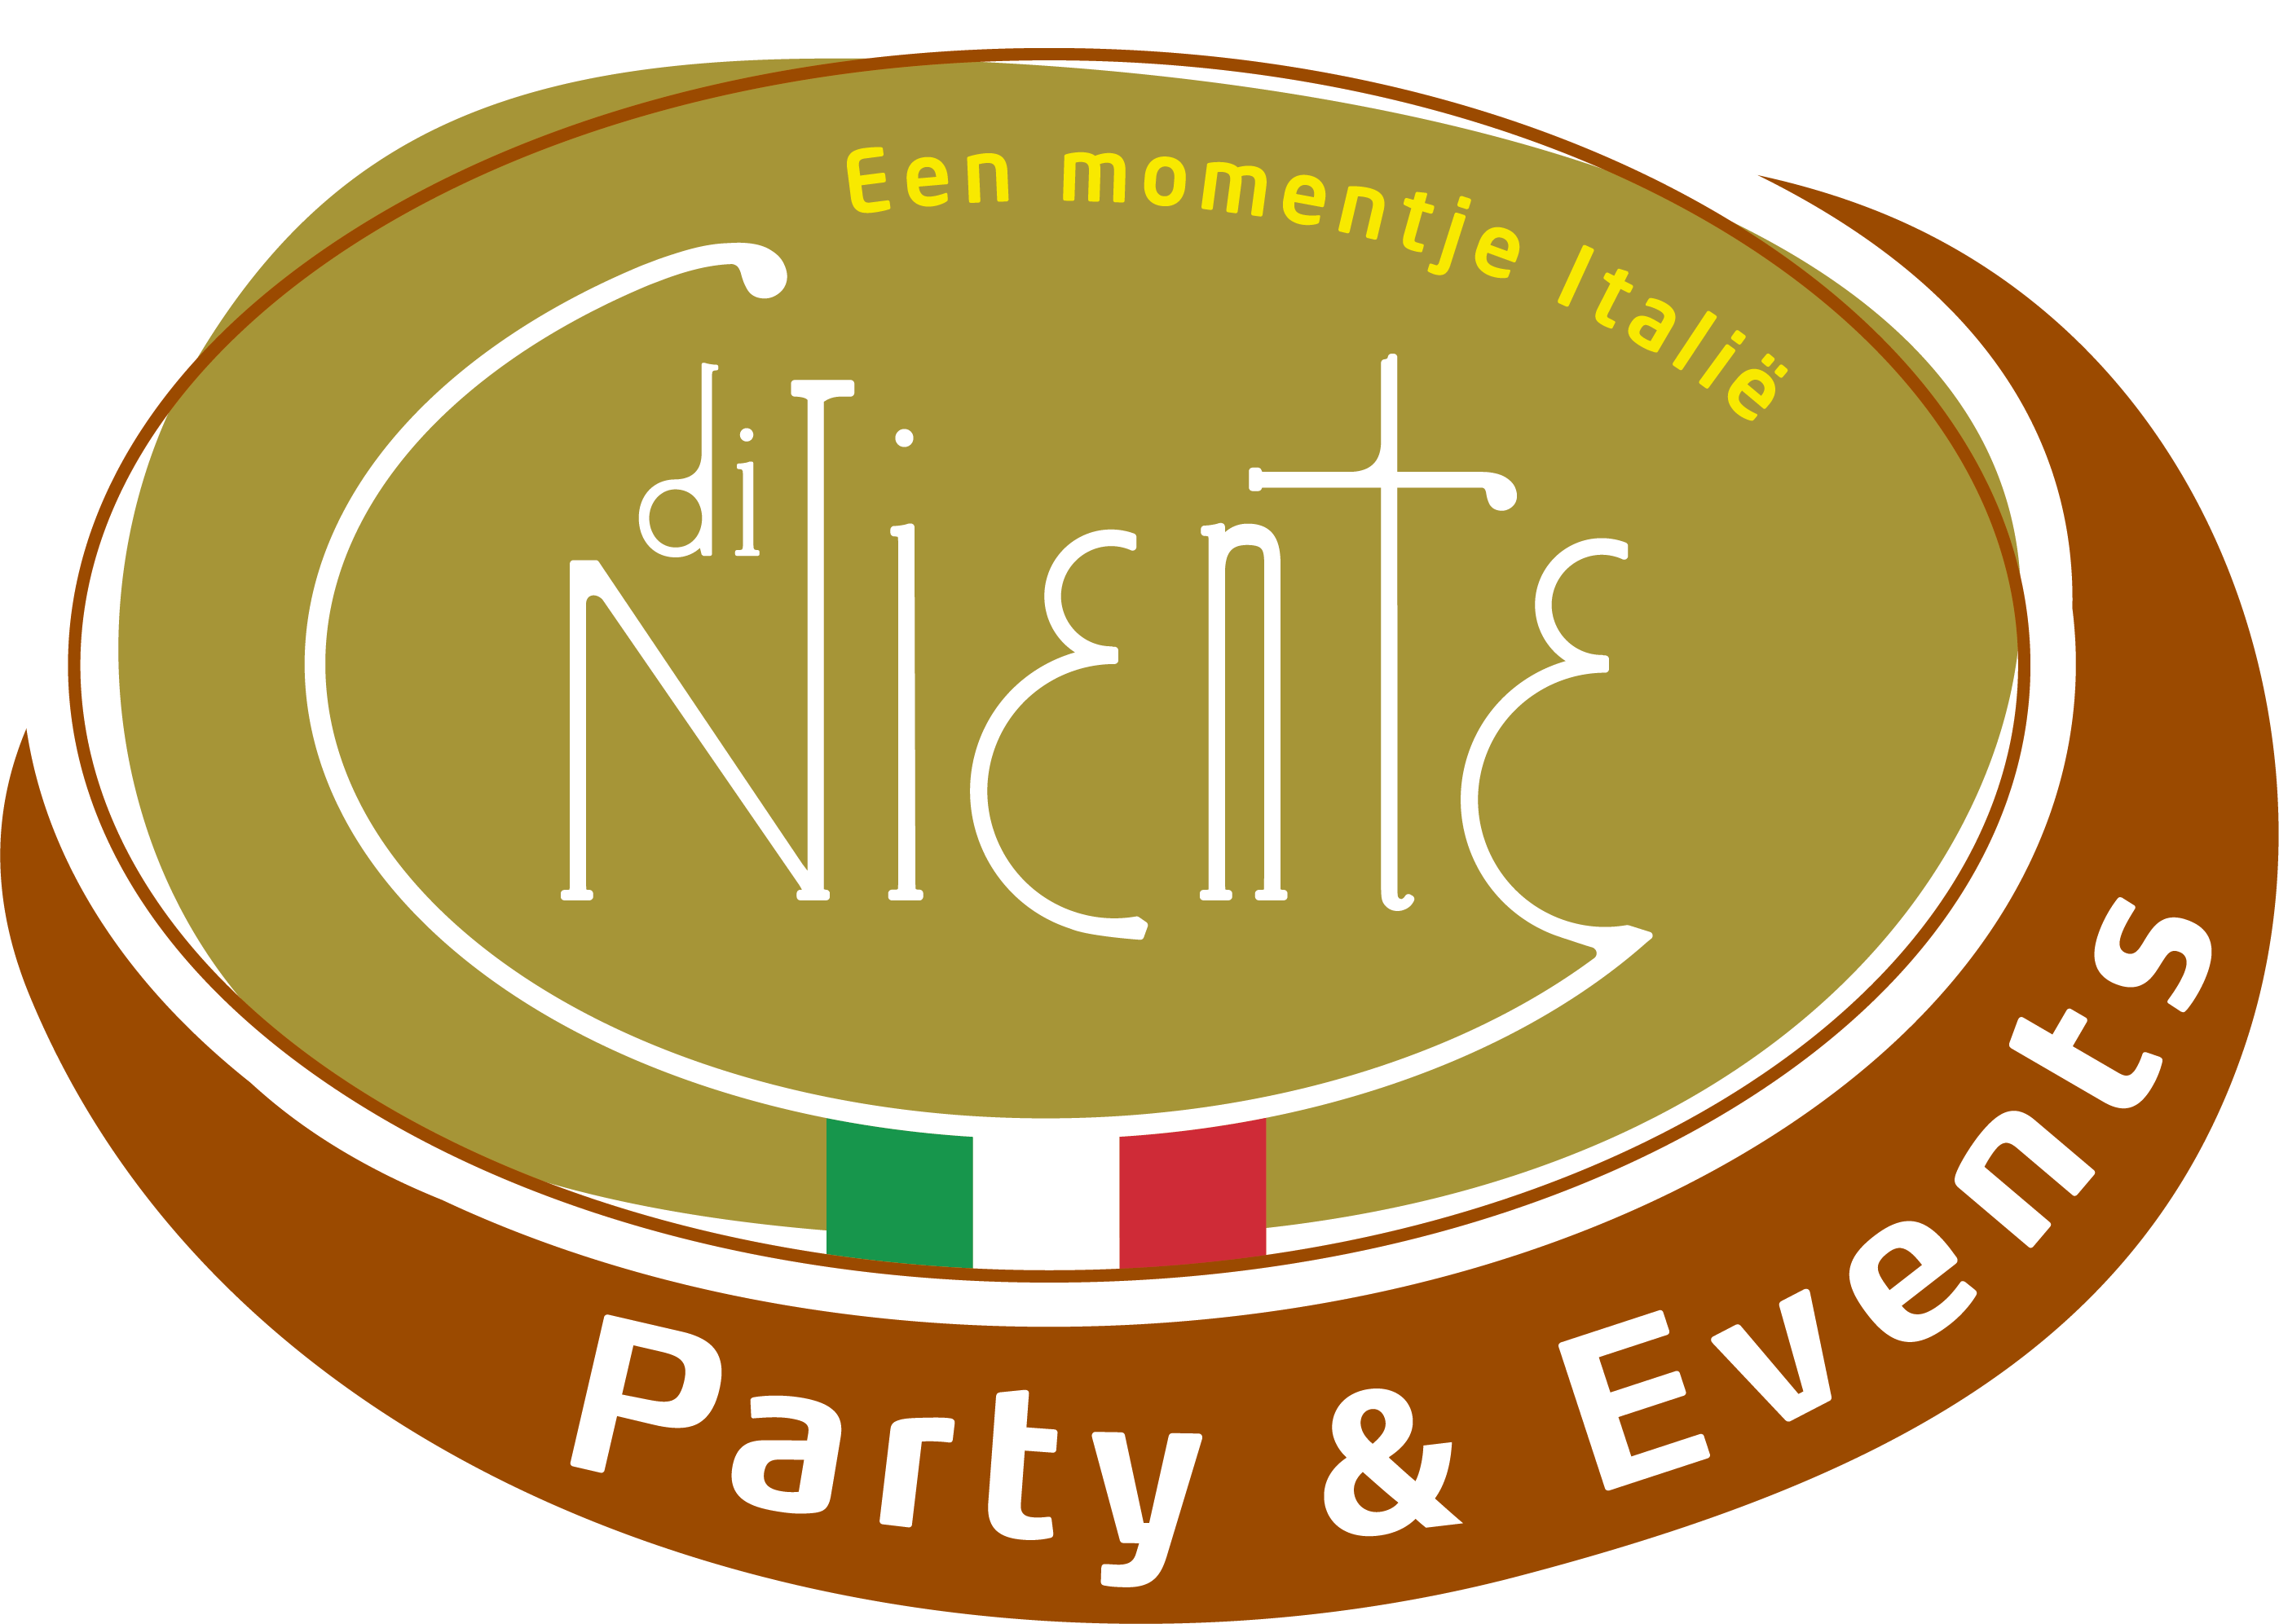 Diniente Party Events logo